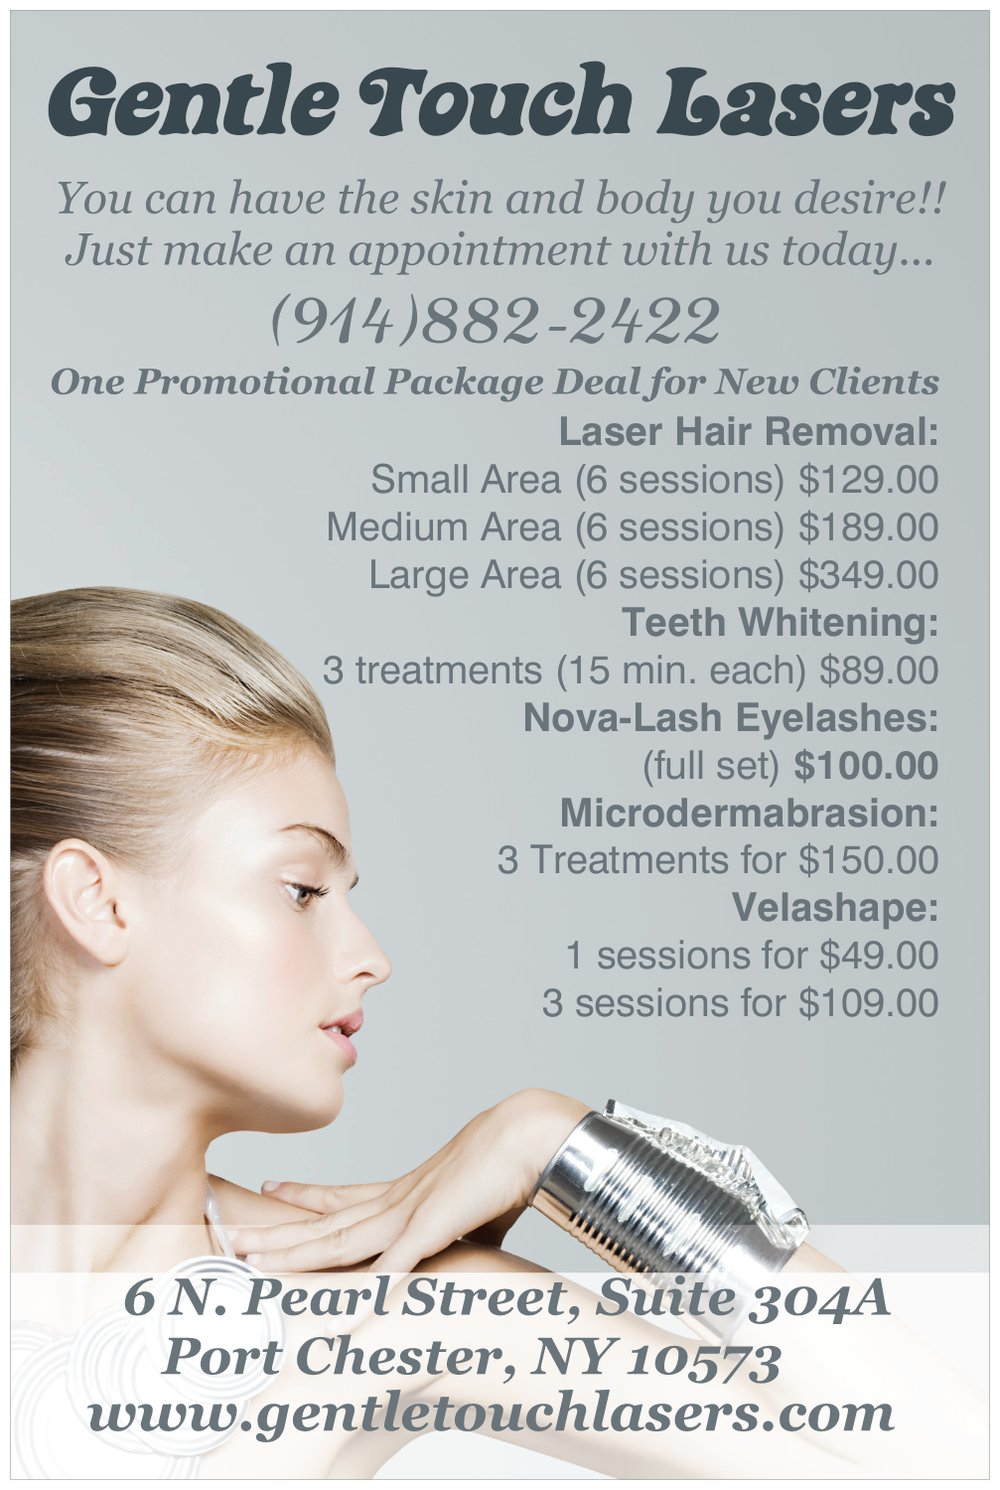 http://www.groupon.com/deals/gentle-touch-lasers-hair-removal-1?utm_campaign=us_dt_sea_ggl_txt_ttt_sr_cbp_ch1_nbr_k%2Agentle+touch+lasers_m%2Ap_d%2Awestchester-county-rtc-root_g%2Artc-gentle-touch-lasers-hair-removal-1-phrase_c%2A53753434721_ap%2A1t1&utm_medium=cpc&utm_source=google